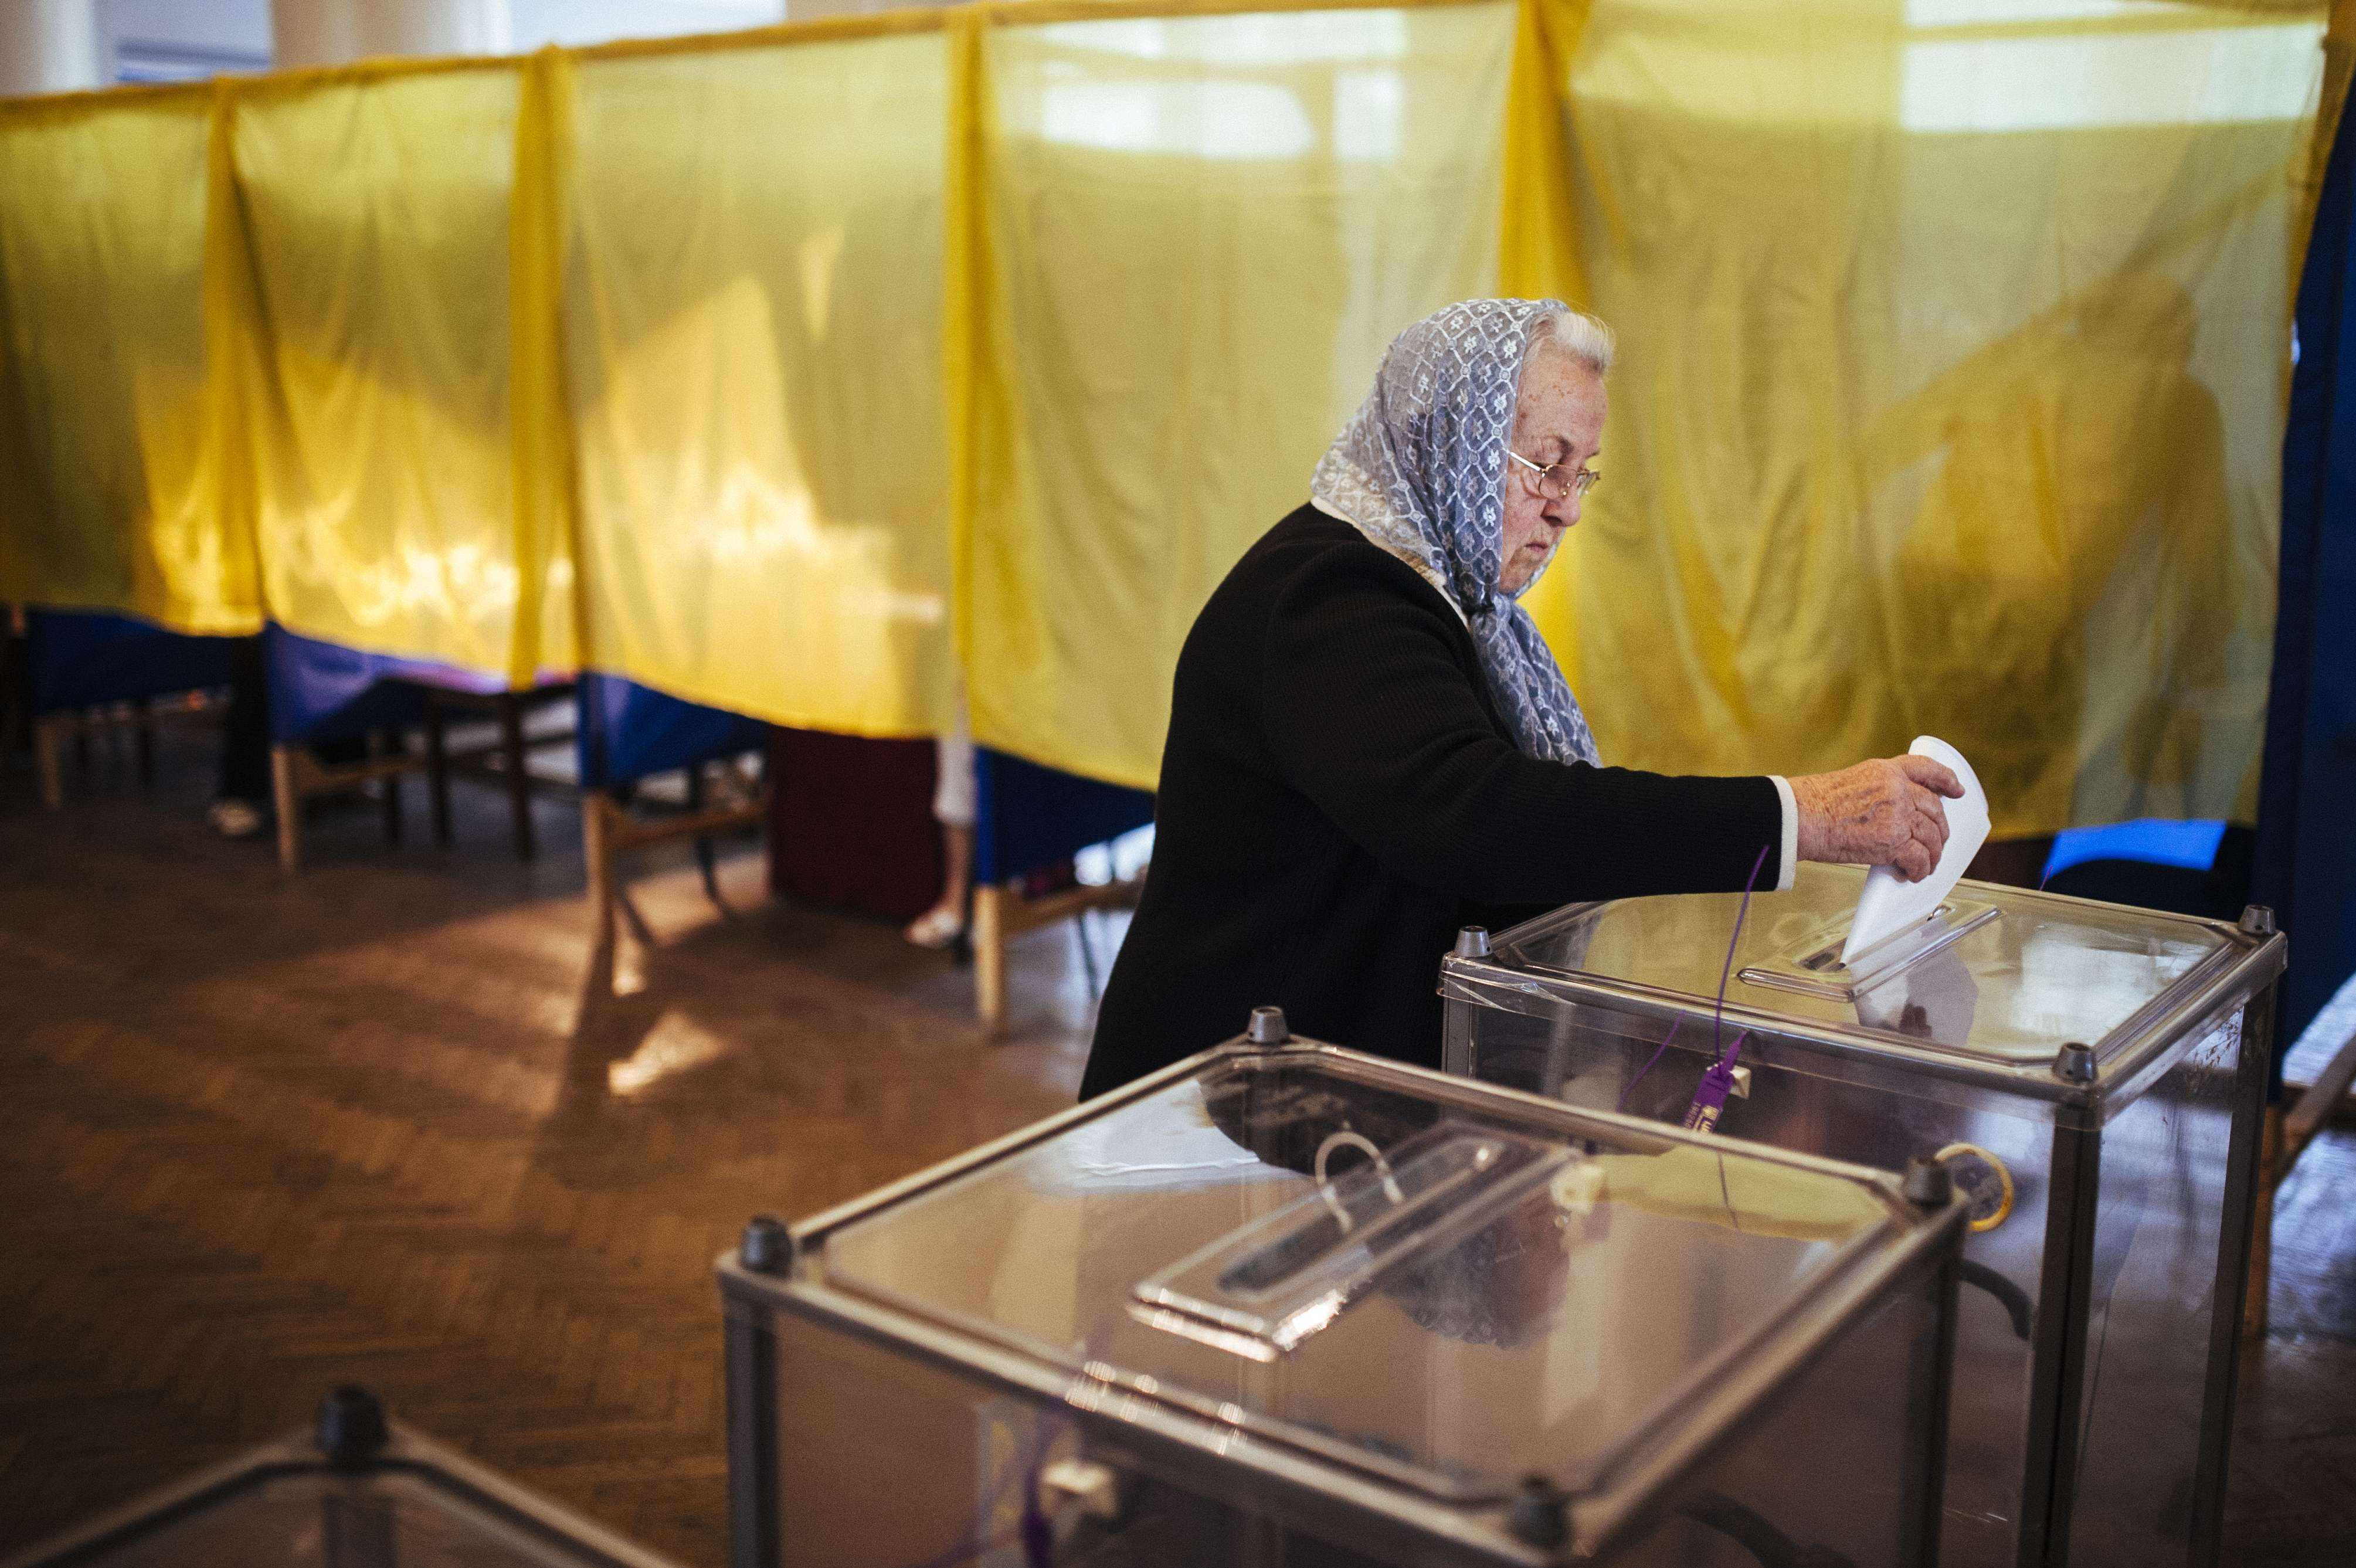 A woman casts her ballot in a polling station in the eastern Ukrainian town of Dobropillya on May 25, 2014. Ukraine was voting May 25 in a presidential election seen as the most important in the country's history as it battles a deadly pro-Russian insurrection in the east.    (AFP PHOTO / DIMITAR DILKOFF)